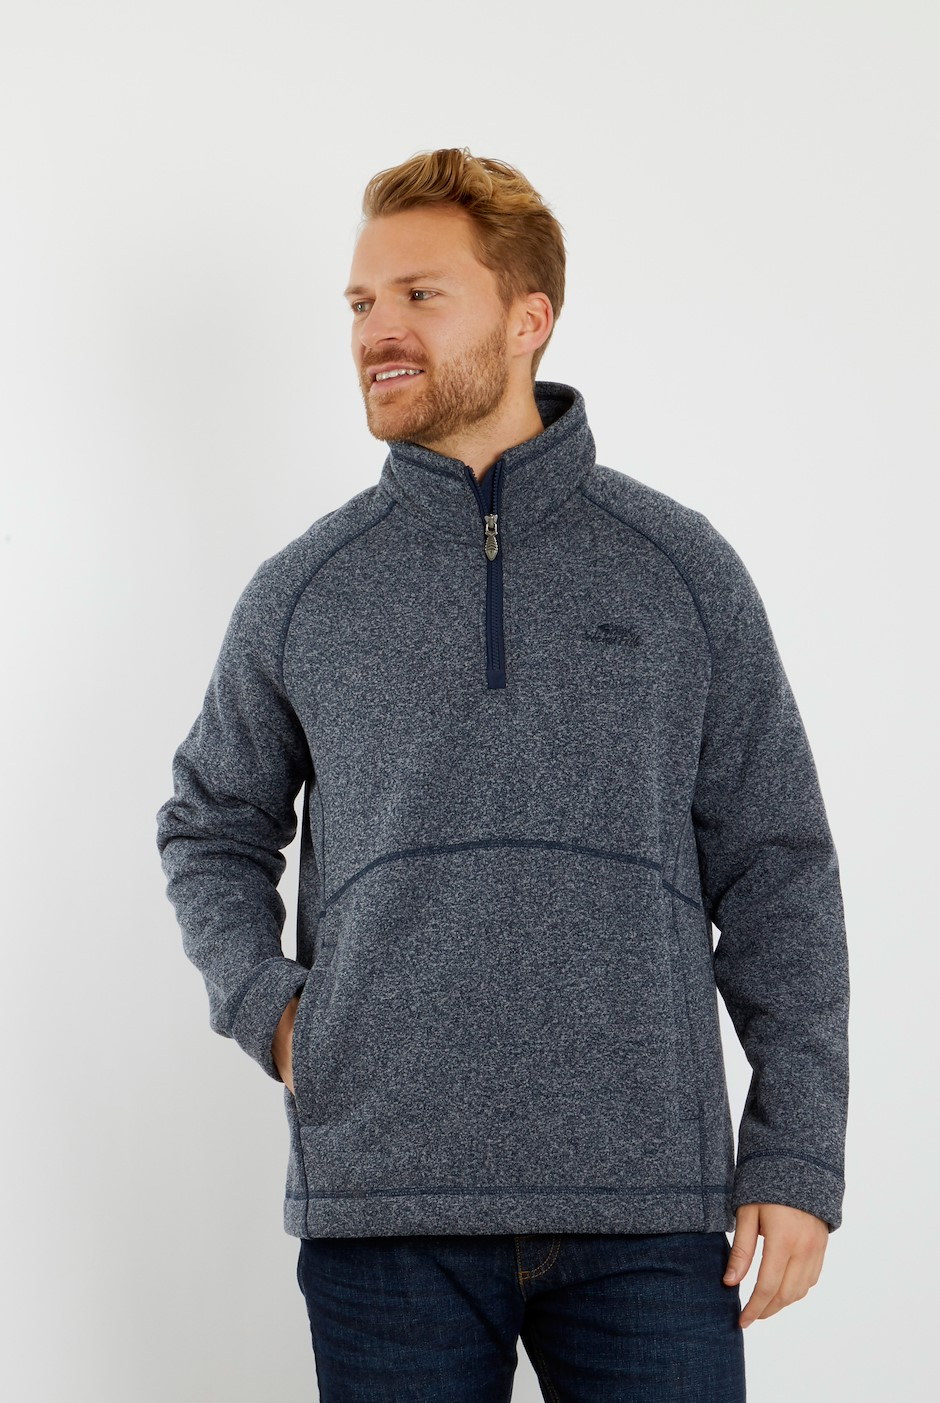 Mercada 1/4 Zip Bonded Fleece Sweatshirt Navy